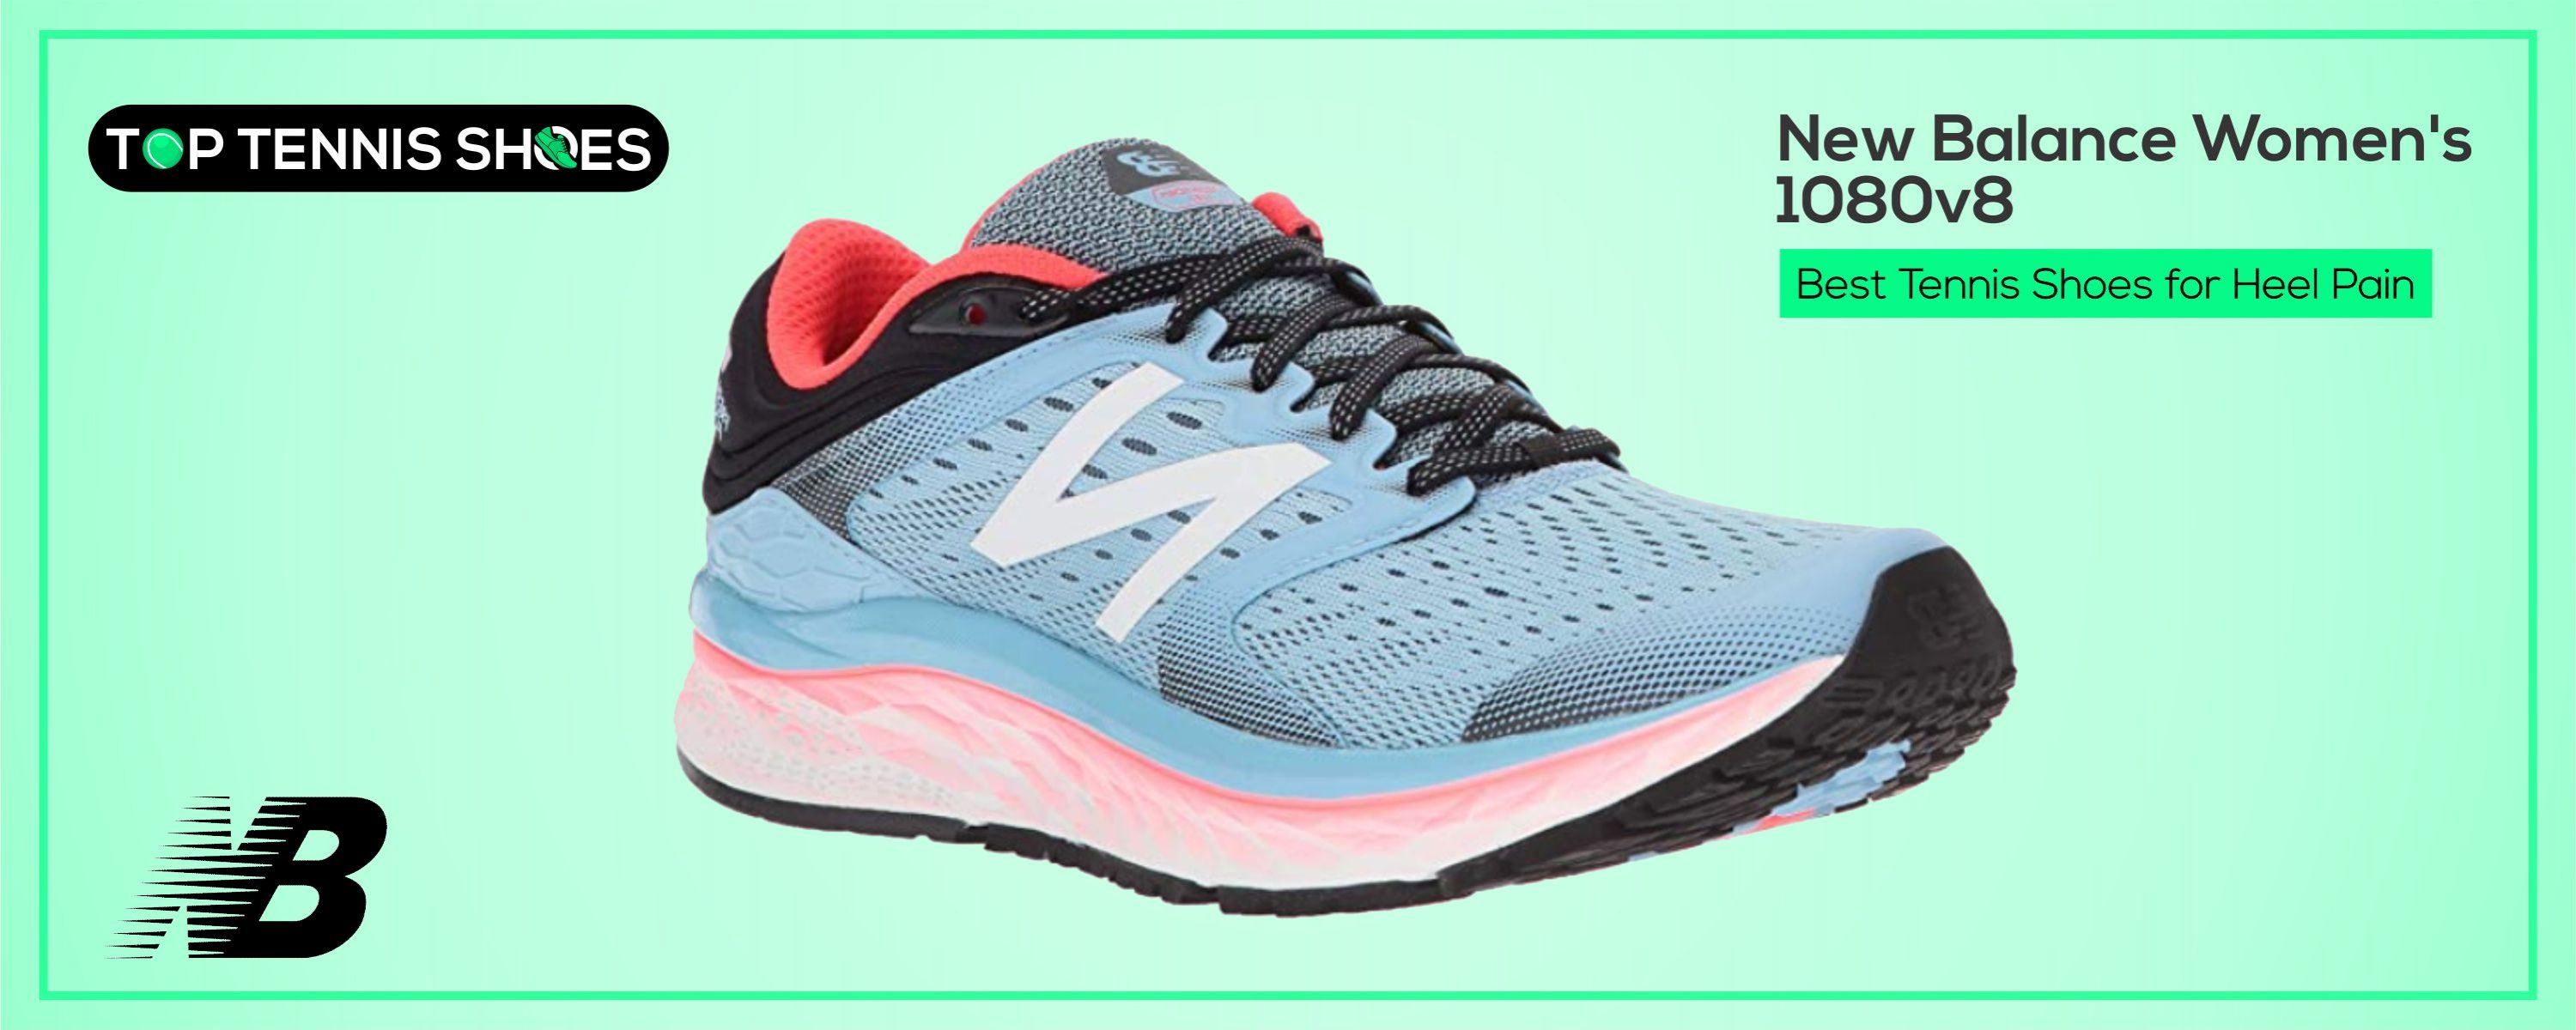 Best Tennis Shoes for heel pain